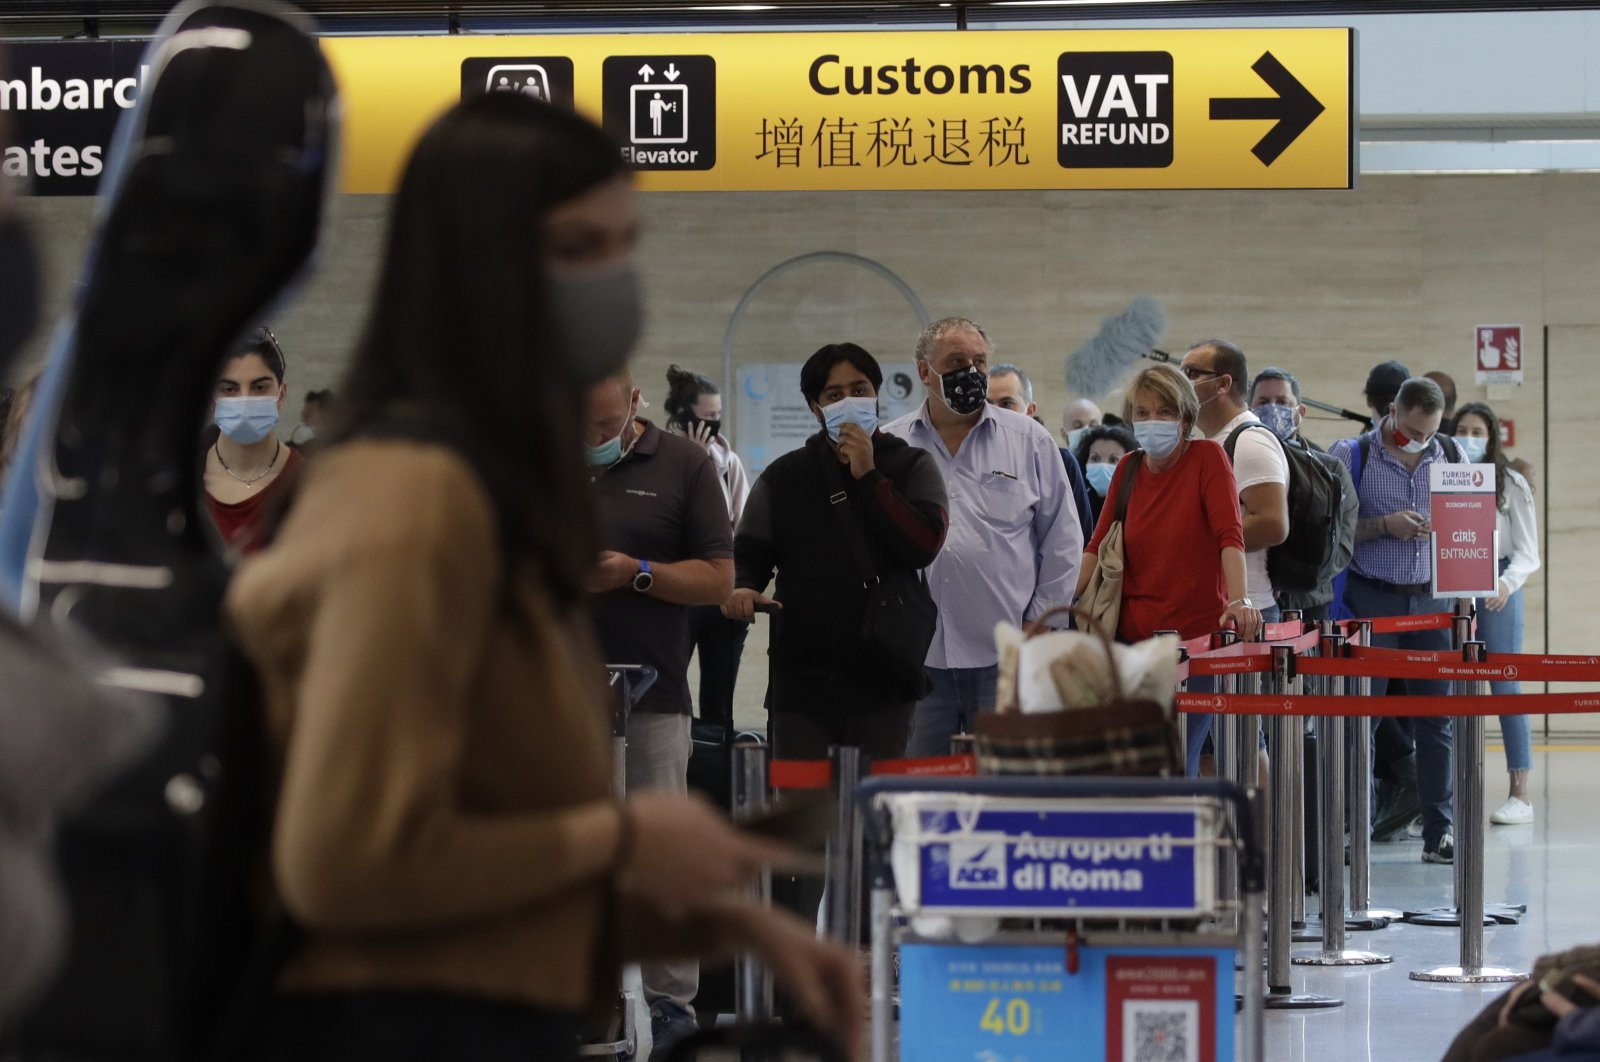 People wait in line at the check-in for a flight to Dusseldorf, Germany, at Rome's Fiumicino airport, June 3, 2020. (AP Photo)